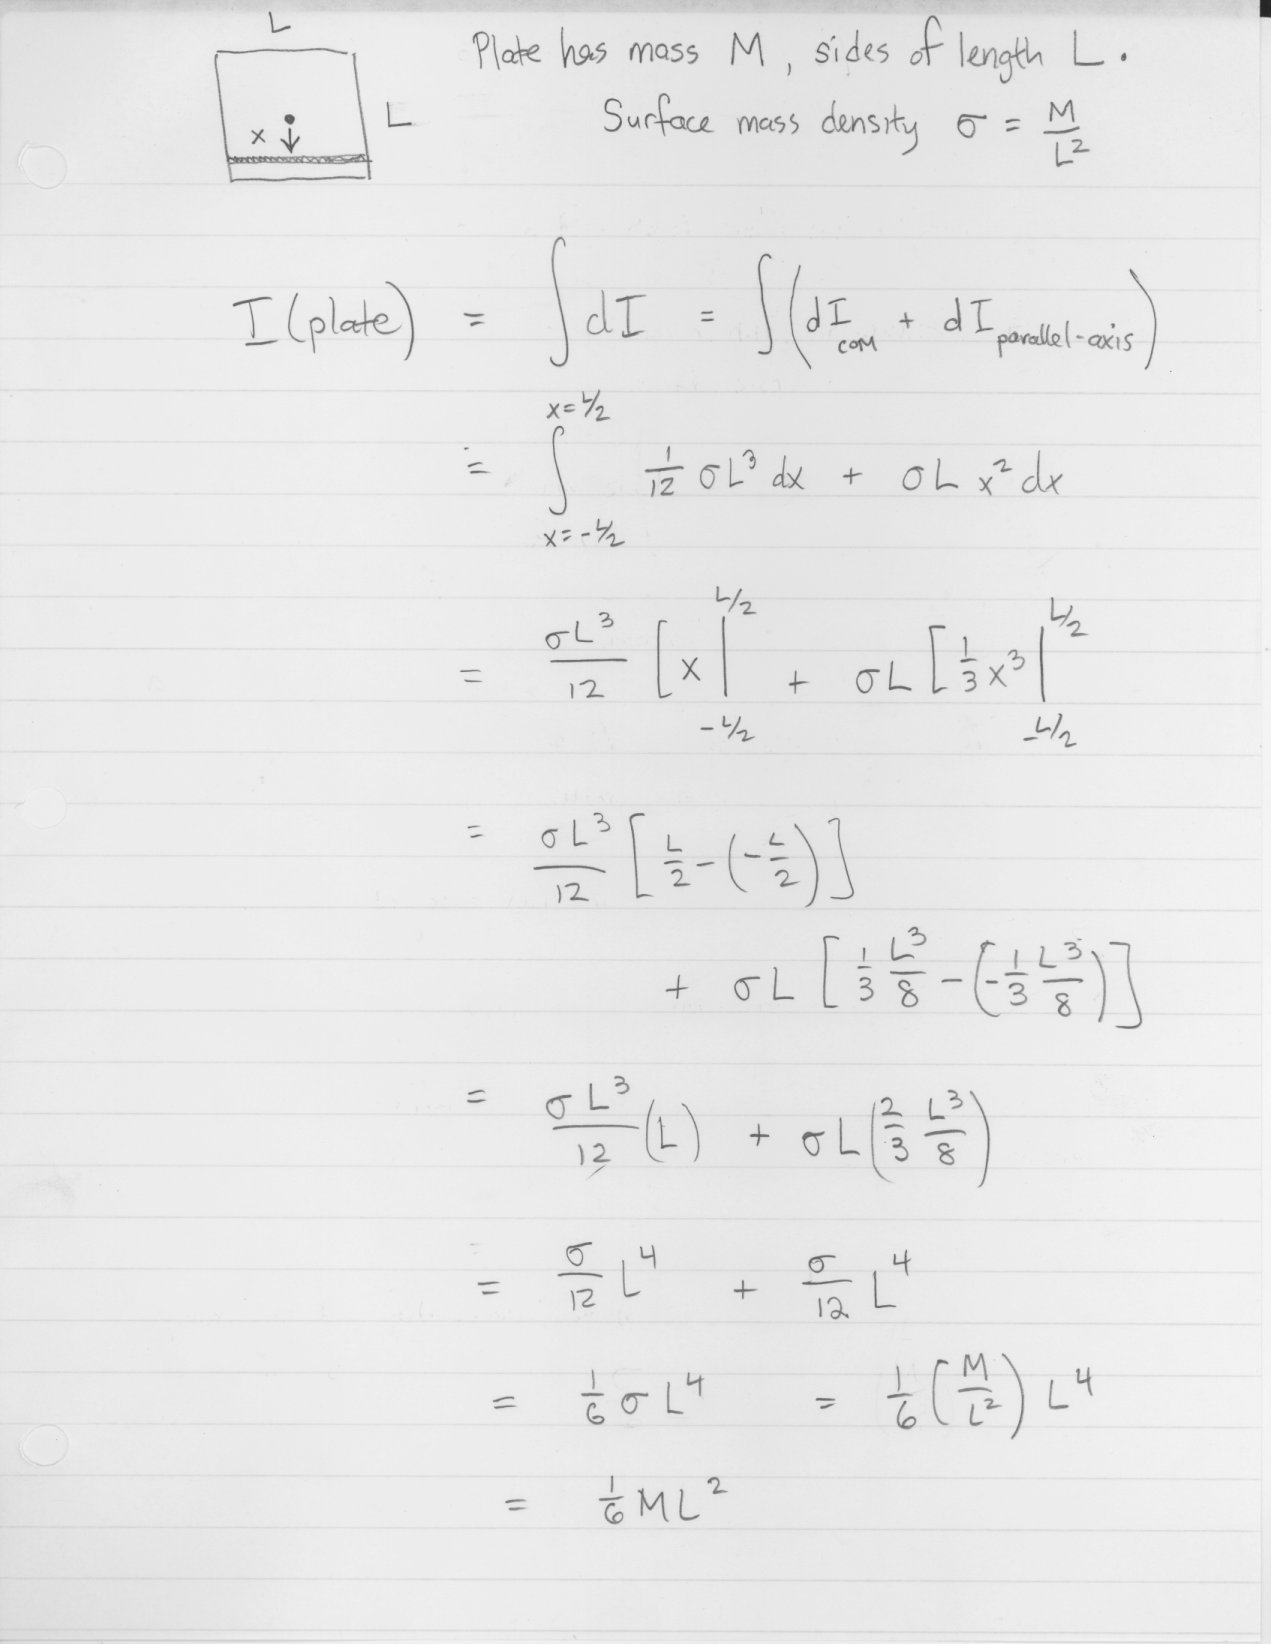 moment of inertia of square of side a about line joining